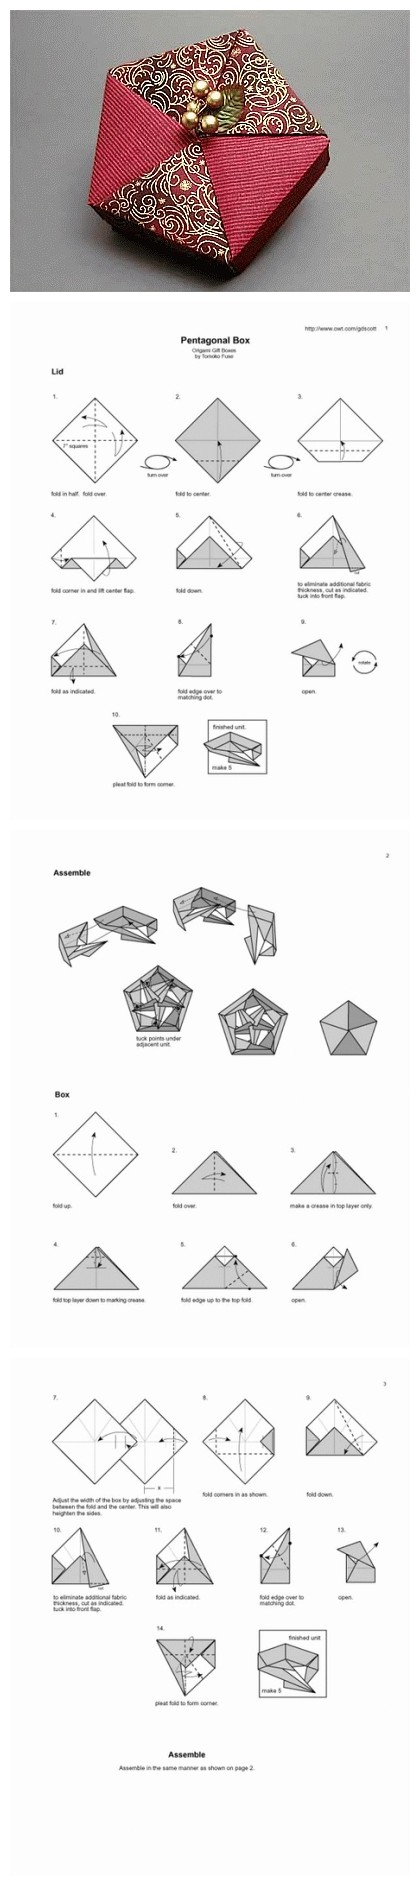 hight resolution of origami pentagonal box with instructions